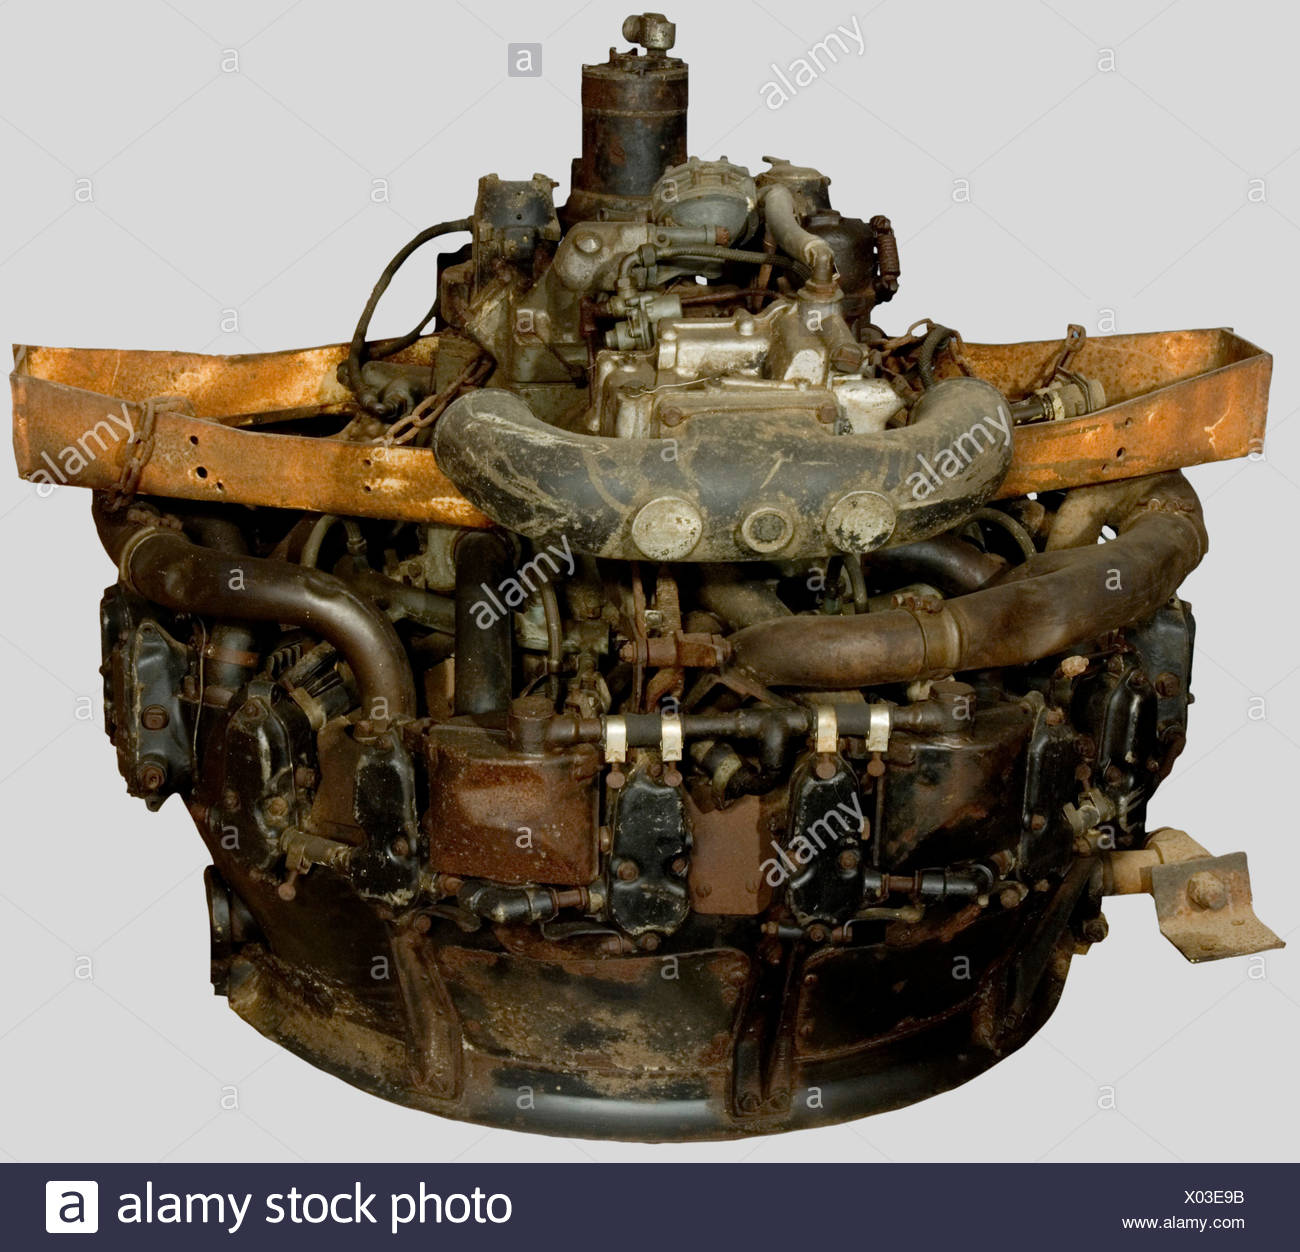 A 9-cylinder US airplane engine, for a Continental Airlines plane. Very corroded., historic, historical, 20th century, technical, technic, material, materials, device, devices, equipment, equipments, utensil, piece of equipment, utensils, technology, militaria, military, object, objects, stills, clipping, clippings, cut out, cut-out, cut-outs, Additional-Rights-Clearances-NA - Stock Image